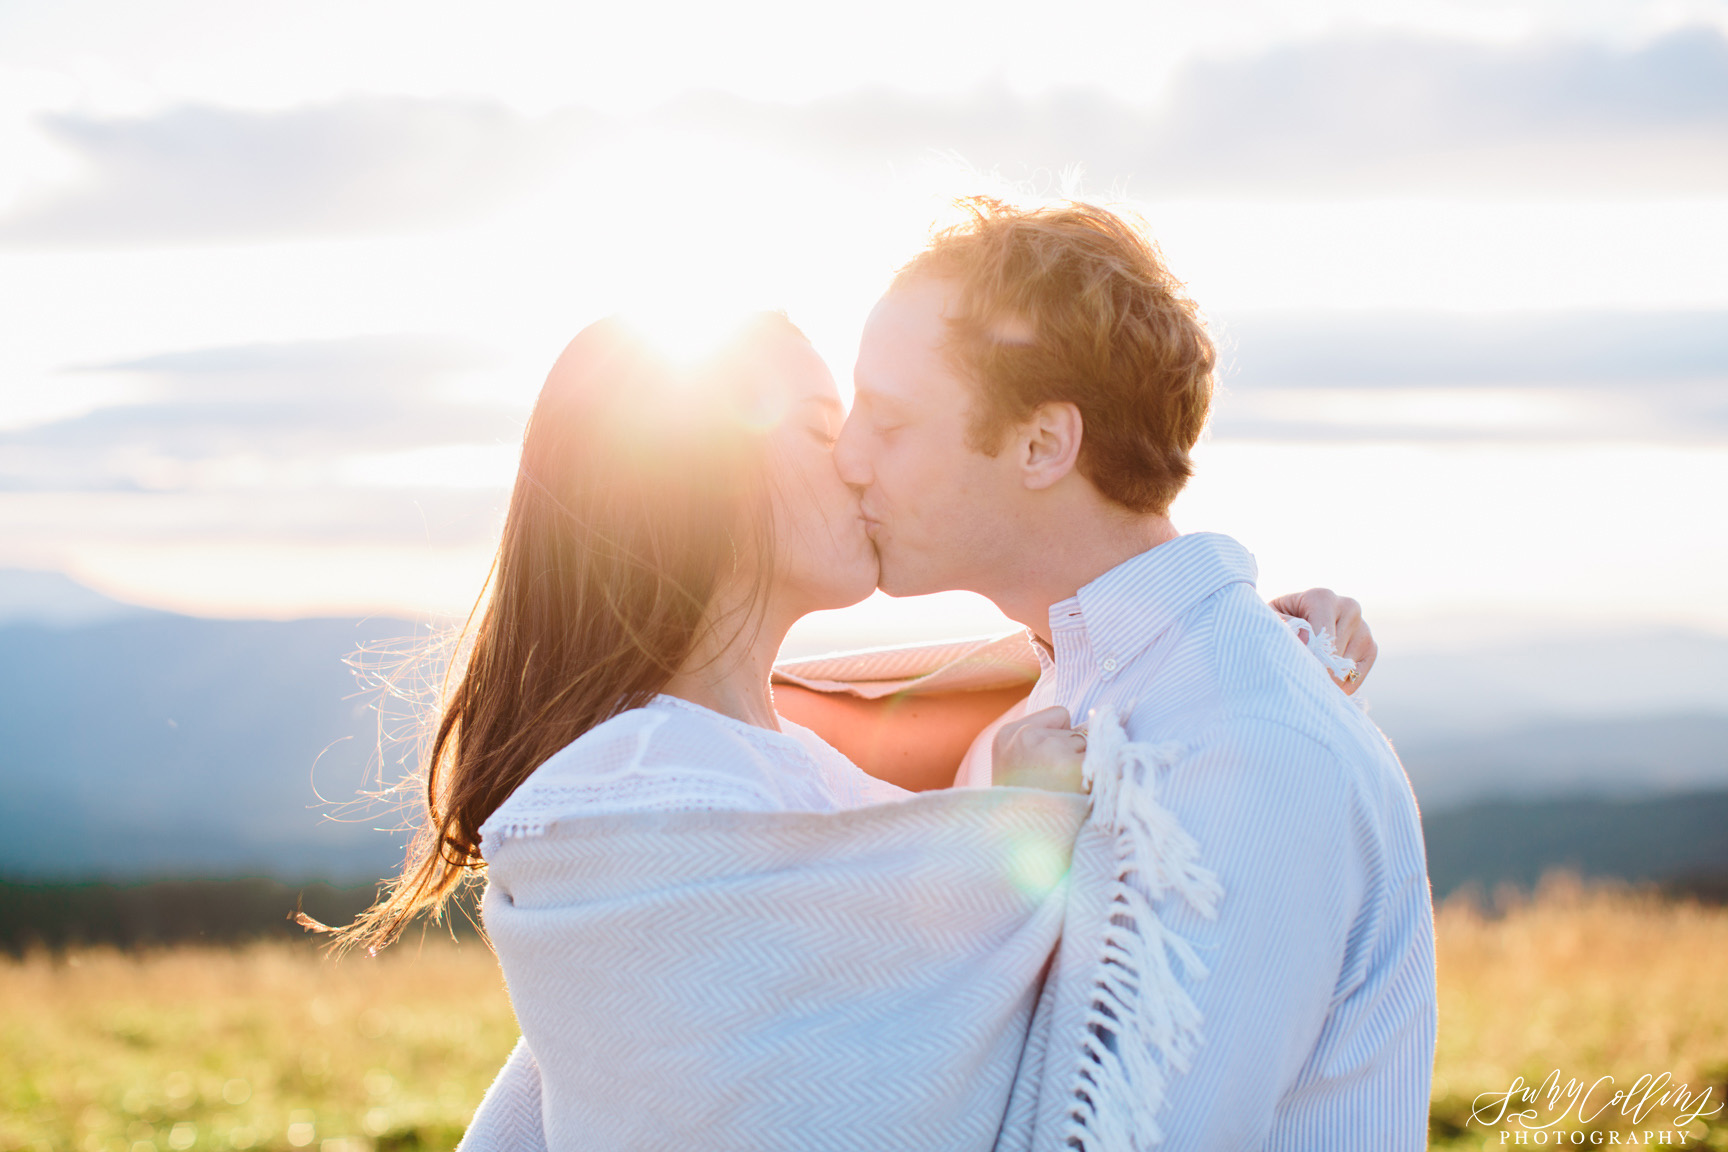 poses, couples, outdoor, max patch, Knoxville, Tennessee, engagement, sunset, evening, love, vibrant, colorful, bright, creative, romantic, natural, light and airy, natural light, passion, inspiration, intimate, outfits, fountain, woods, field, sunrise, windy, North Carolina, kiss, cuddling